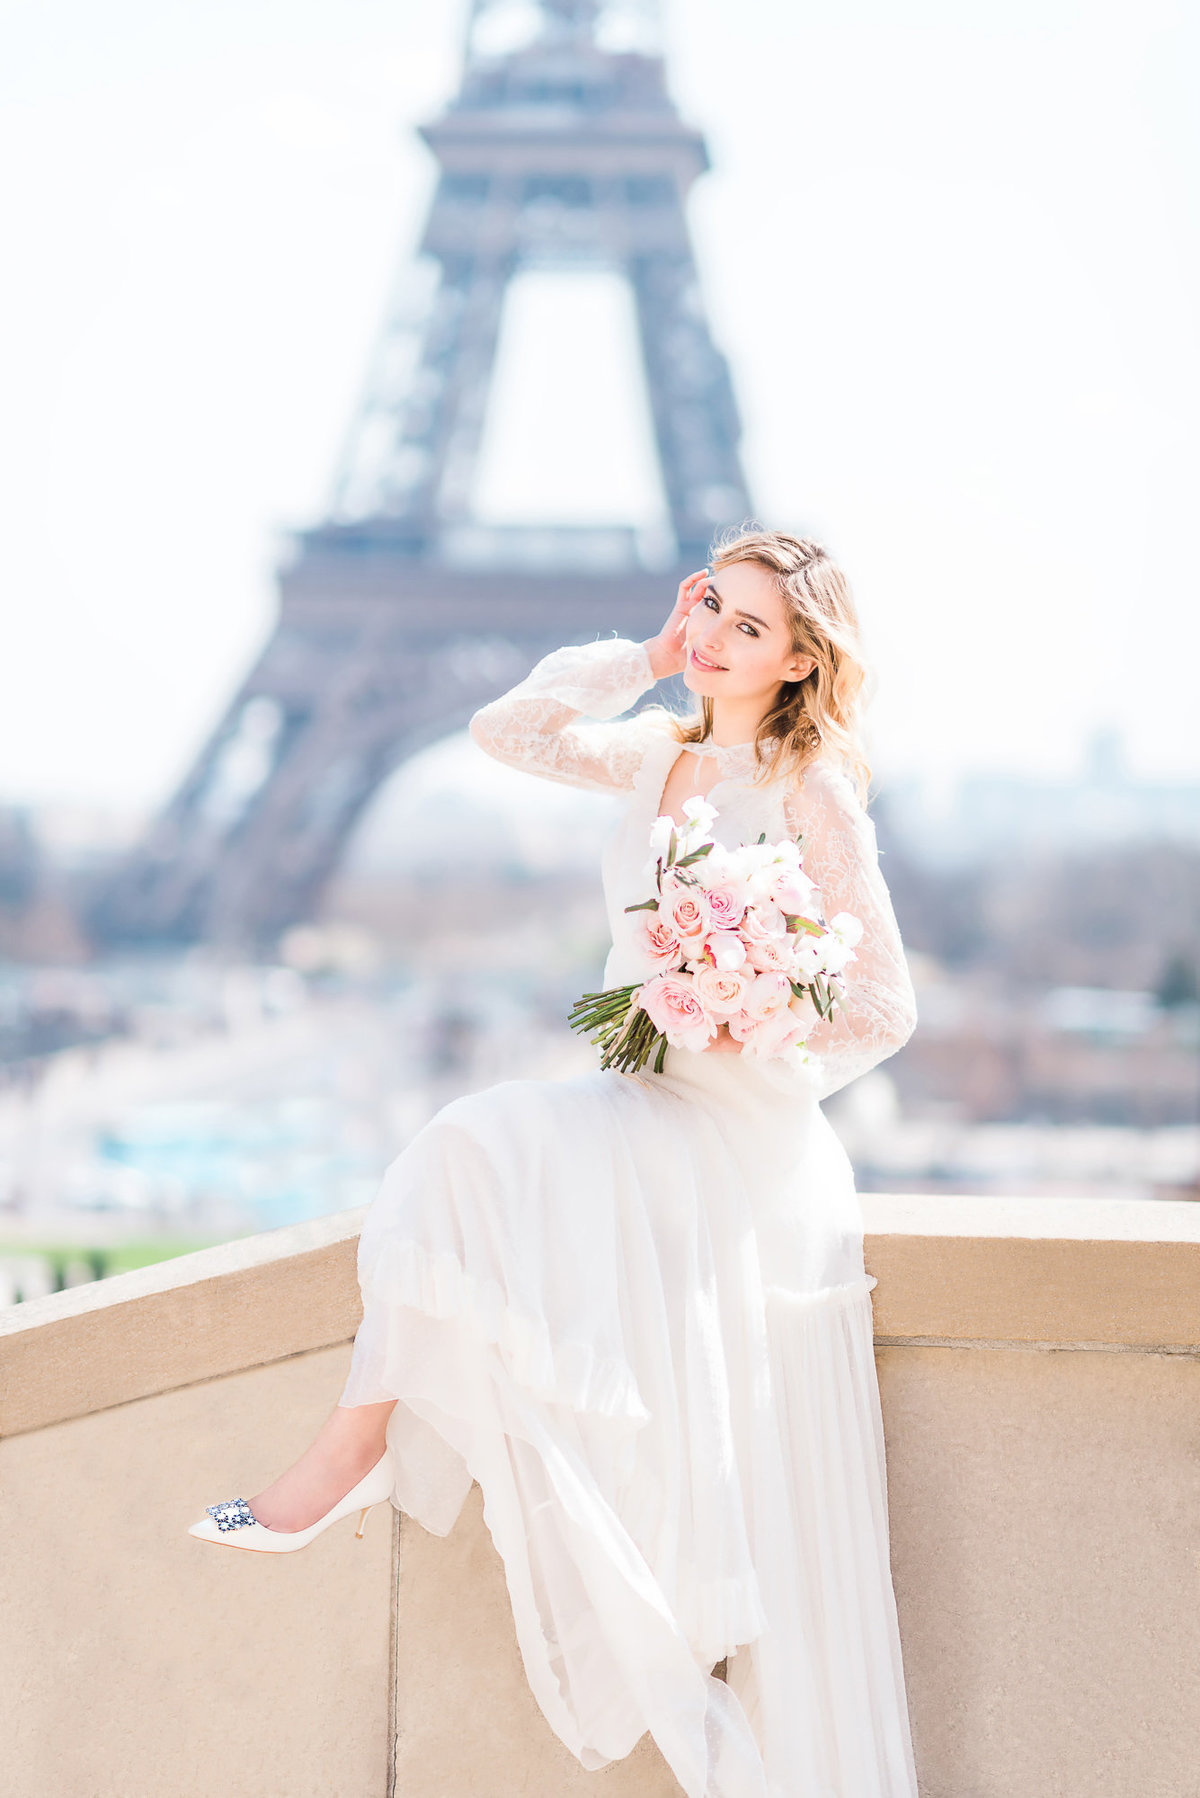 Paris_Wedding_Photographer_165